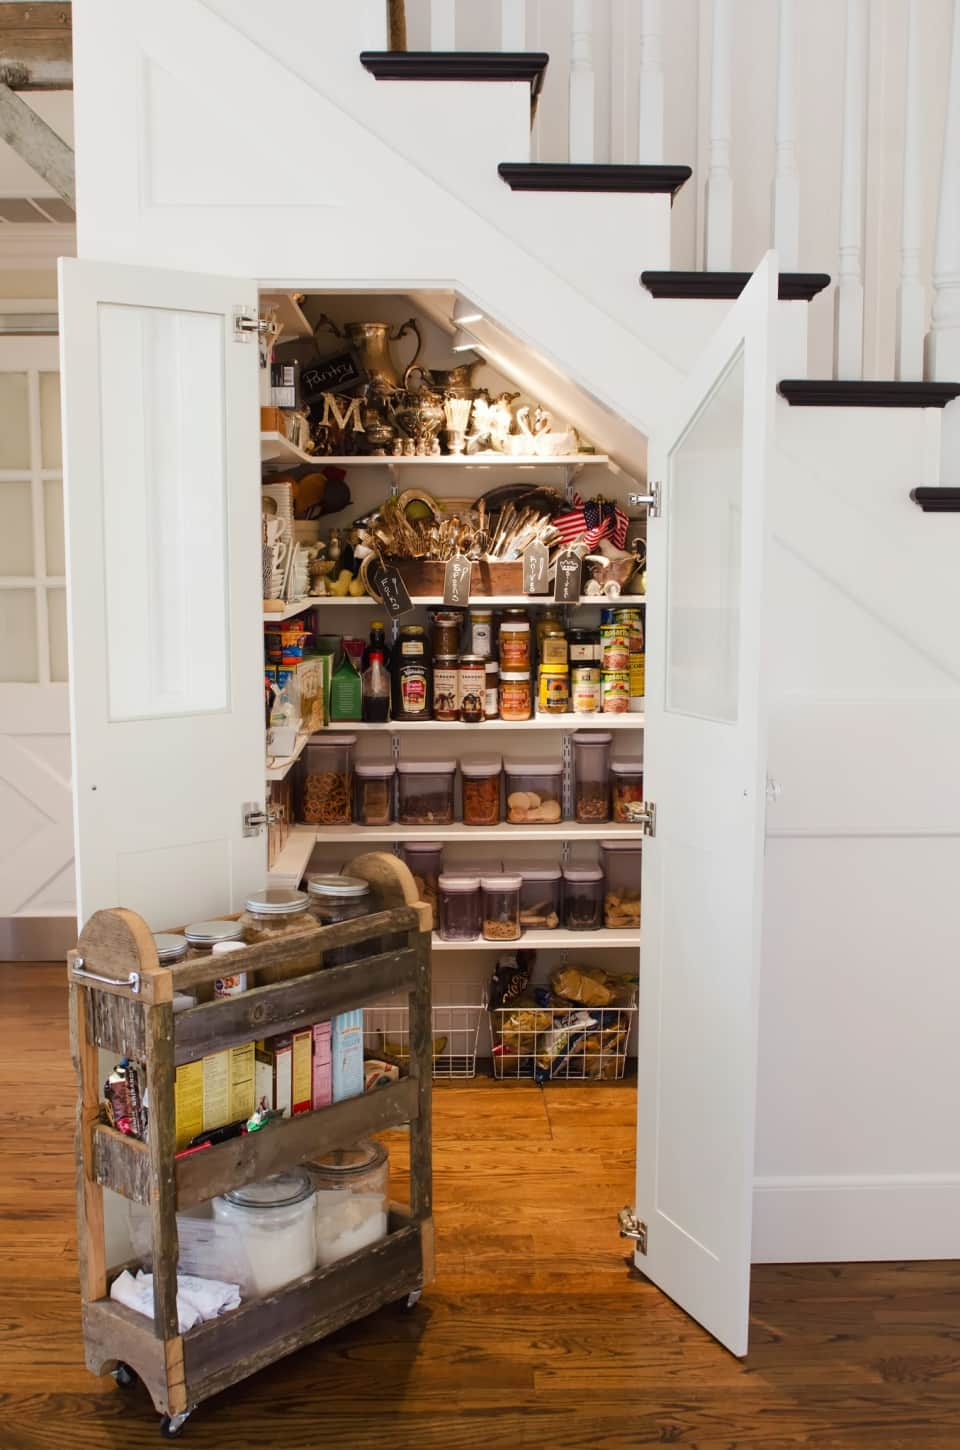 Under The Stairs Storage | Food Storage Ideas for Small Homes